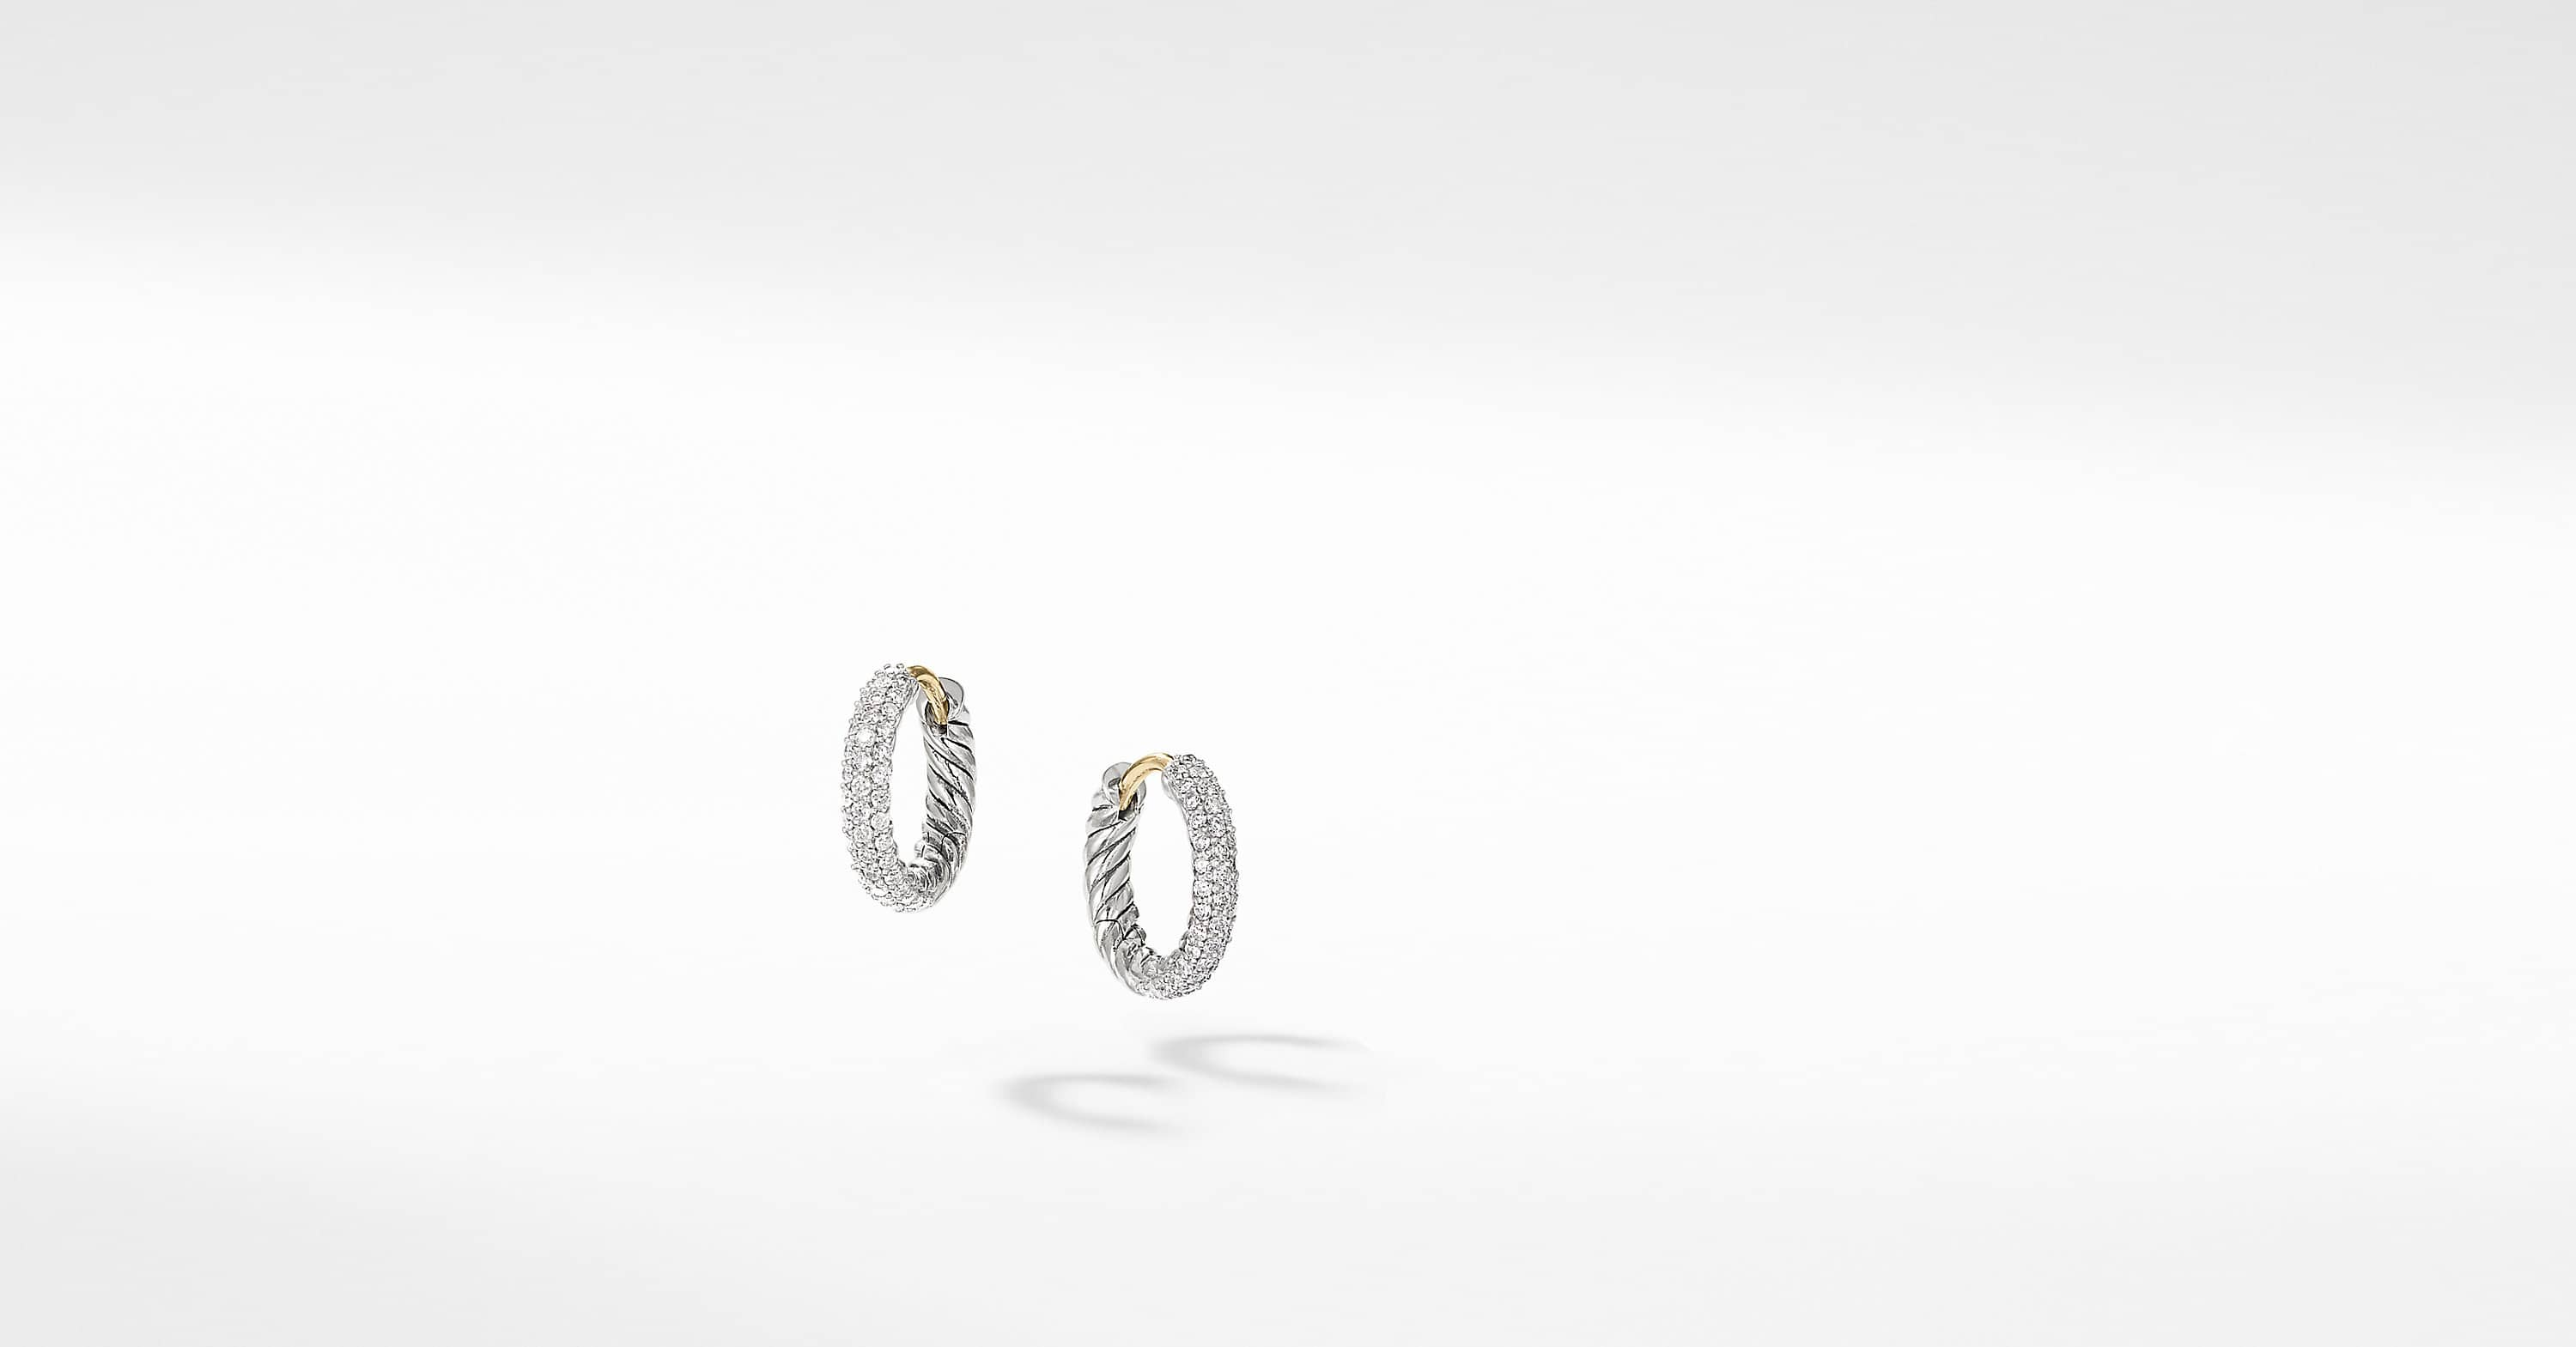 Petite Pave Huggie Hoop Earrings with Diamonds